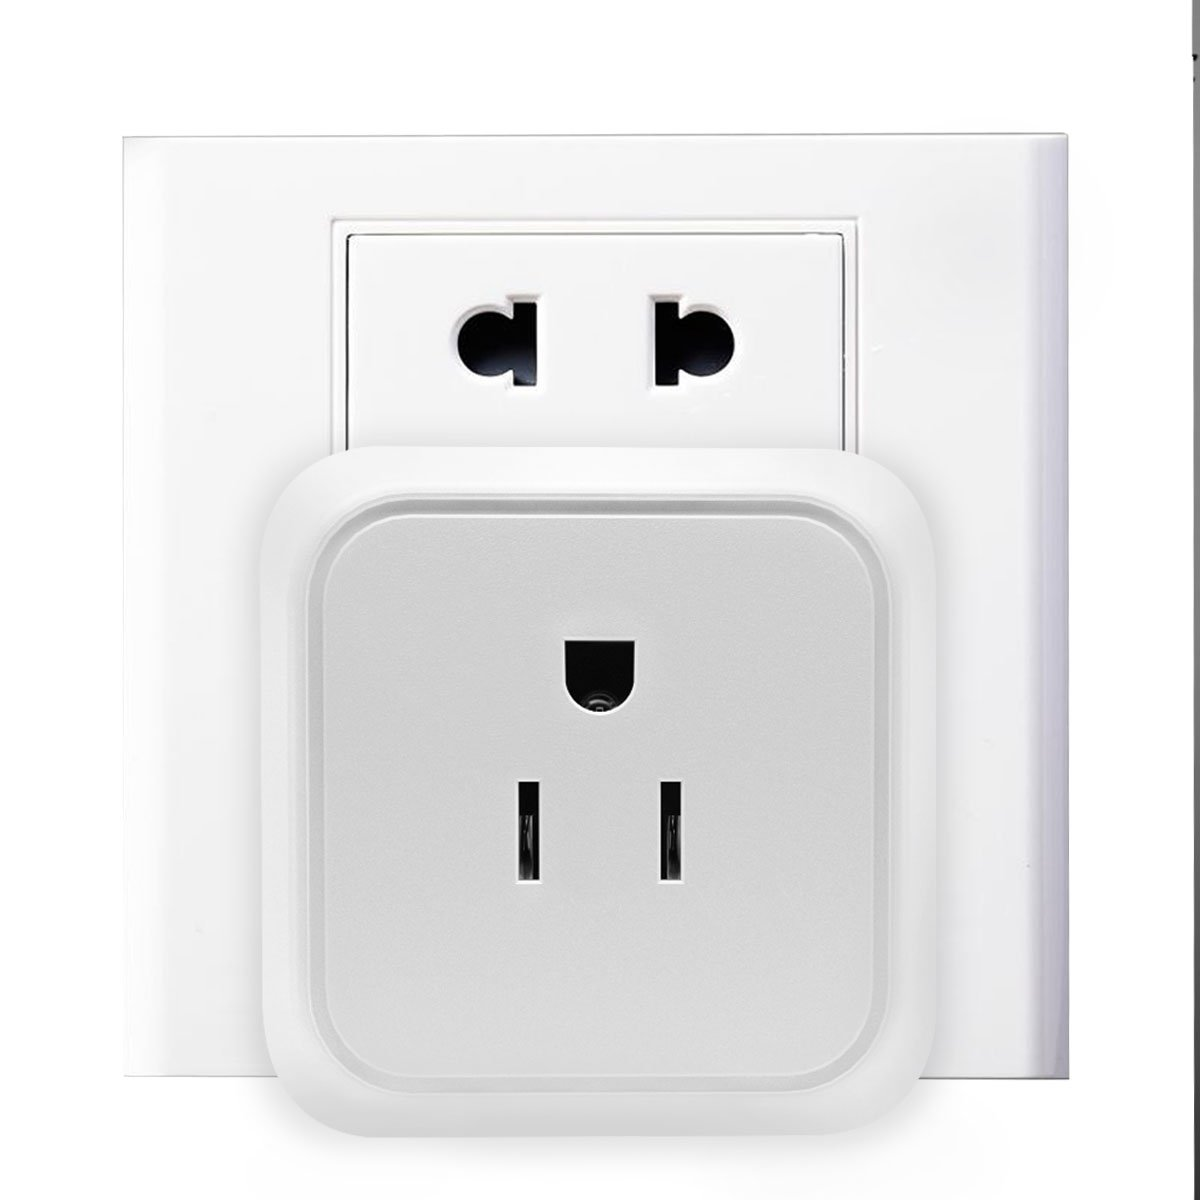 Smart Plug - Wifi Smart Mini Outlet Socket Compatible with Alexa Echo and Google Home IFTTT, Remote Control by Smart Phone with Timing Function from Anywhere, No Hub Required (2 Packs)